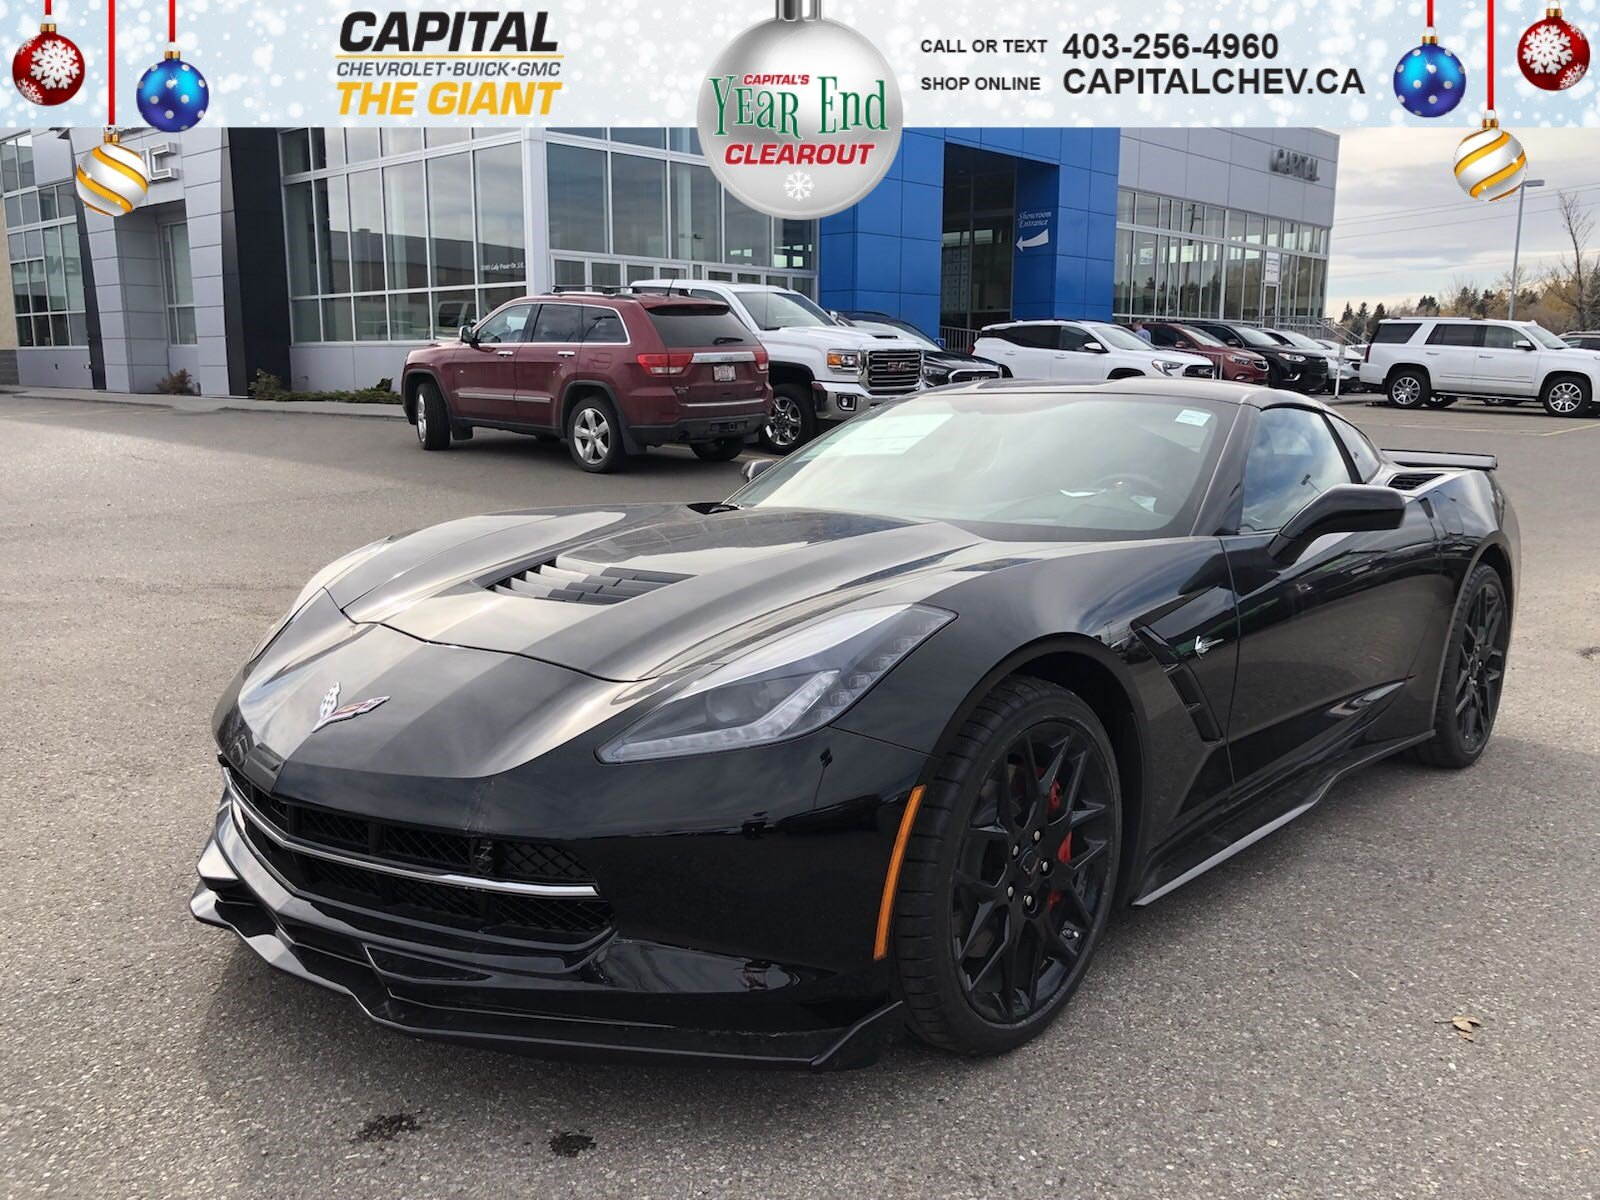 New 2019 Chevrolet Corvette Z51 3LT